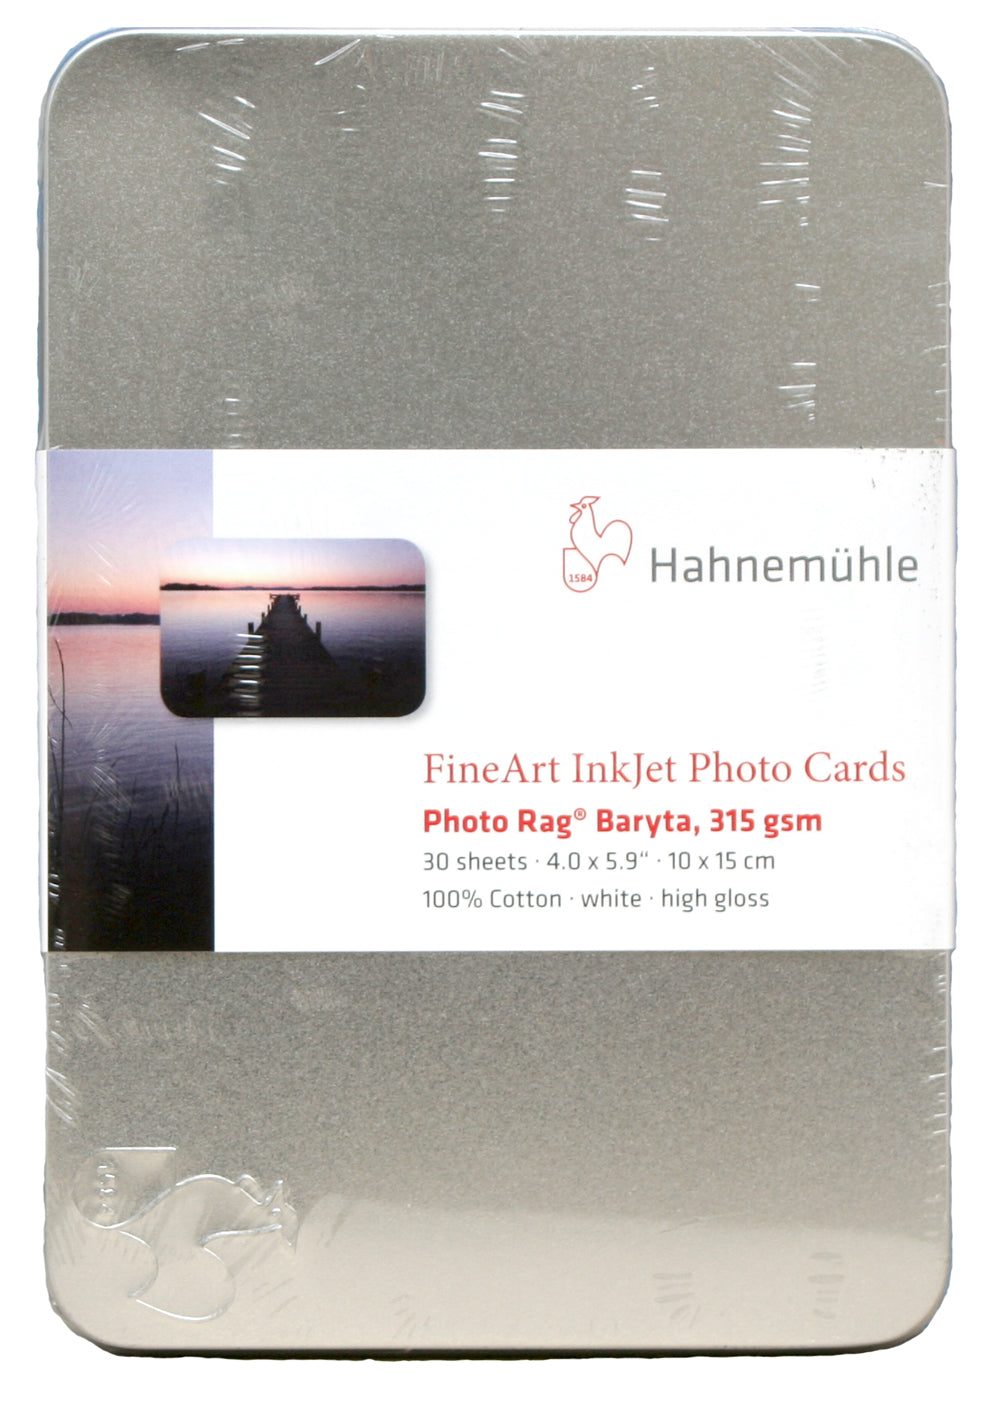 Hahnemühle Photo Rag Baryta 315gsm